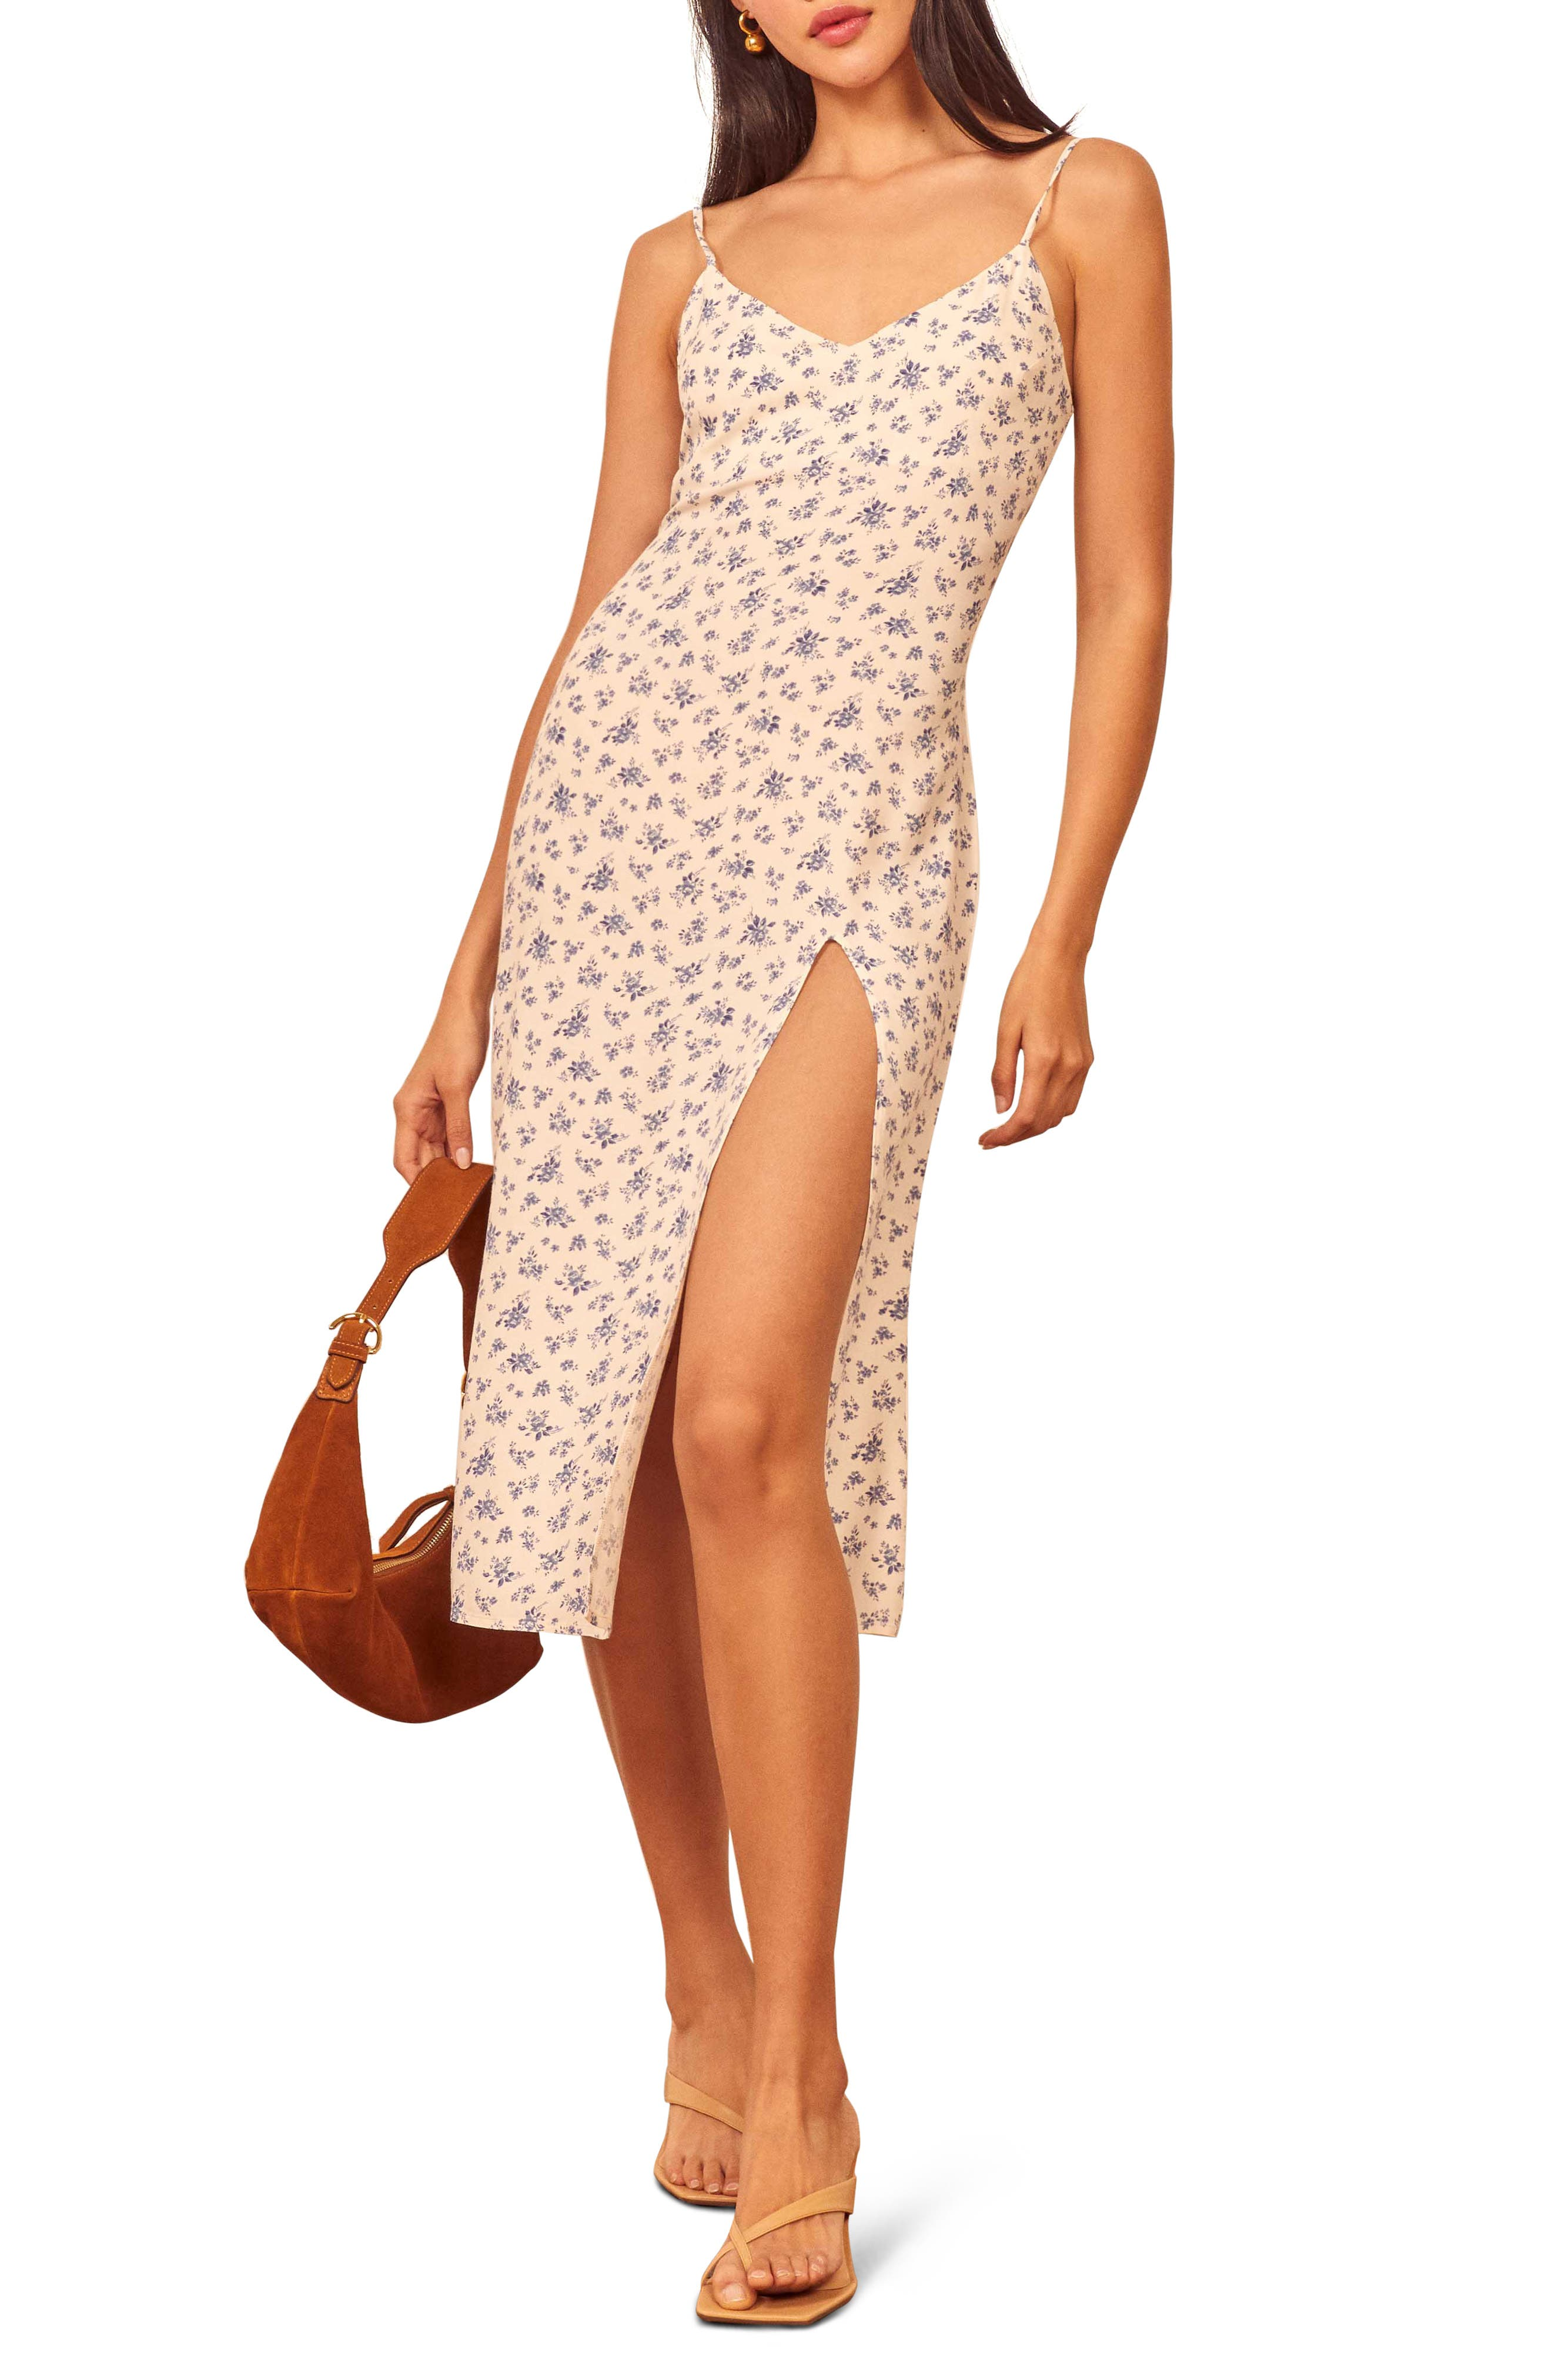 Slipdress style adds a sassy slit in a breezy dress that\\\'s ready for your sunny-season adventures. Style Name: Reformation Crimini Slipdress (Nordstrom Exclusive). Style Number: 5727426 6. Available in stores.